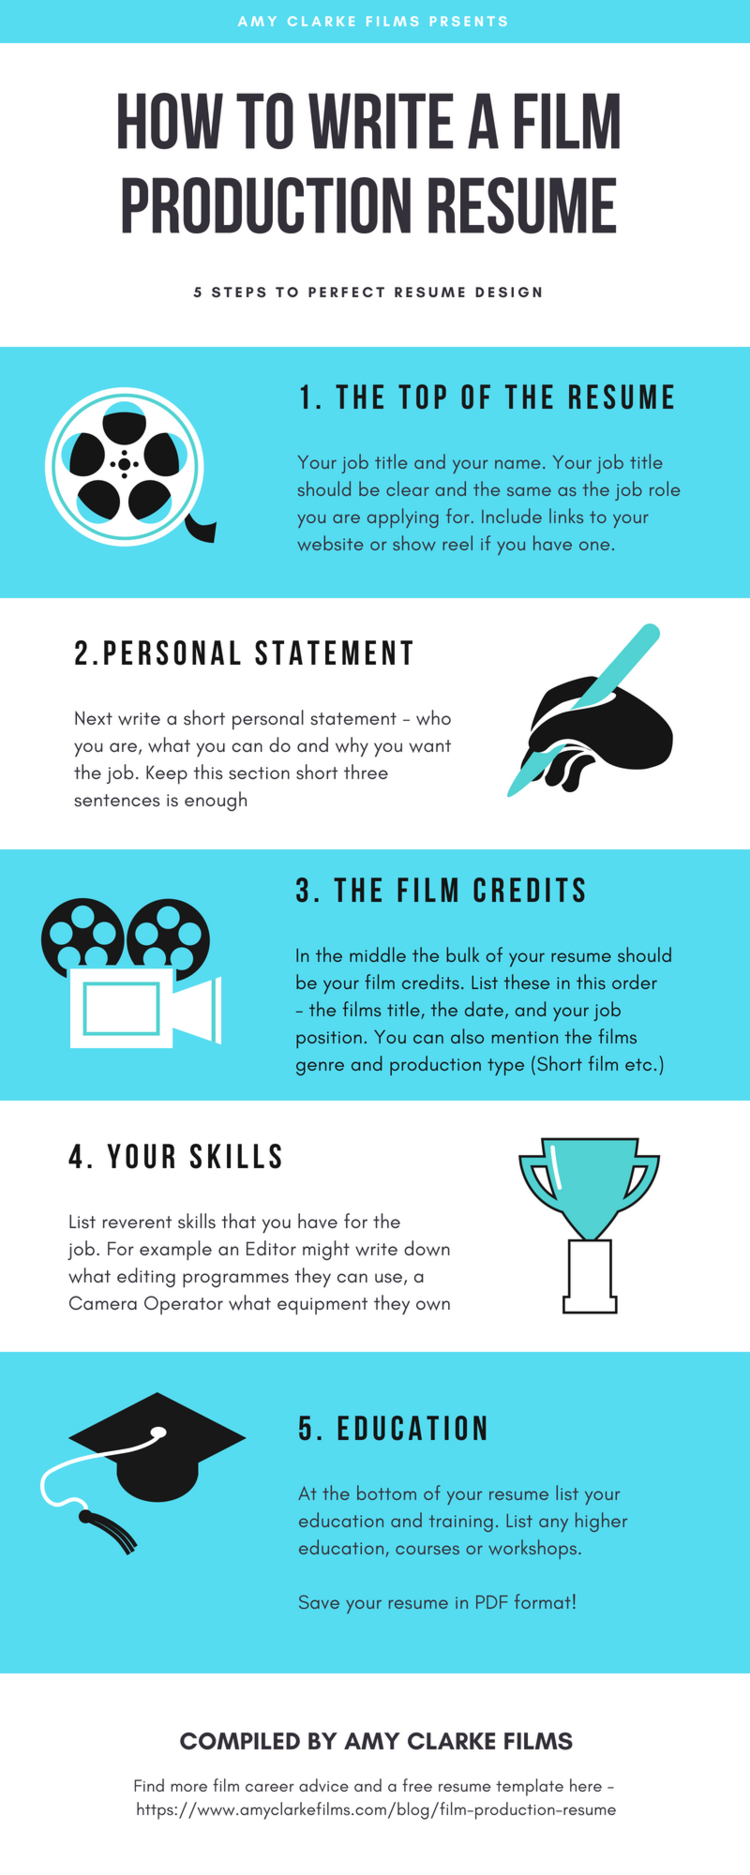 10 Step To Writing Your Film Production Resume Amy Clarke Tip Template Free And Television Studie Personal Statement